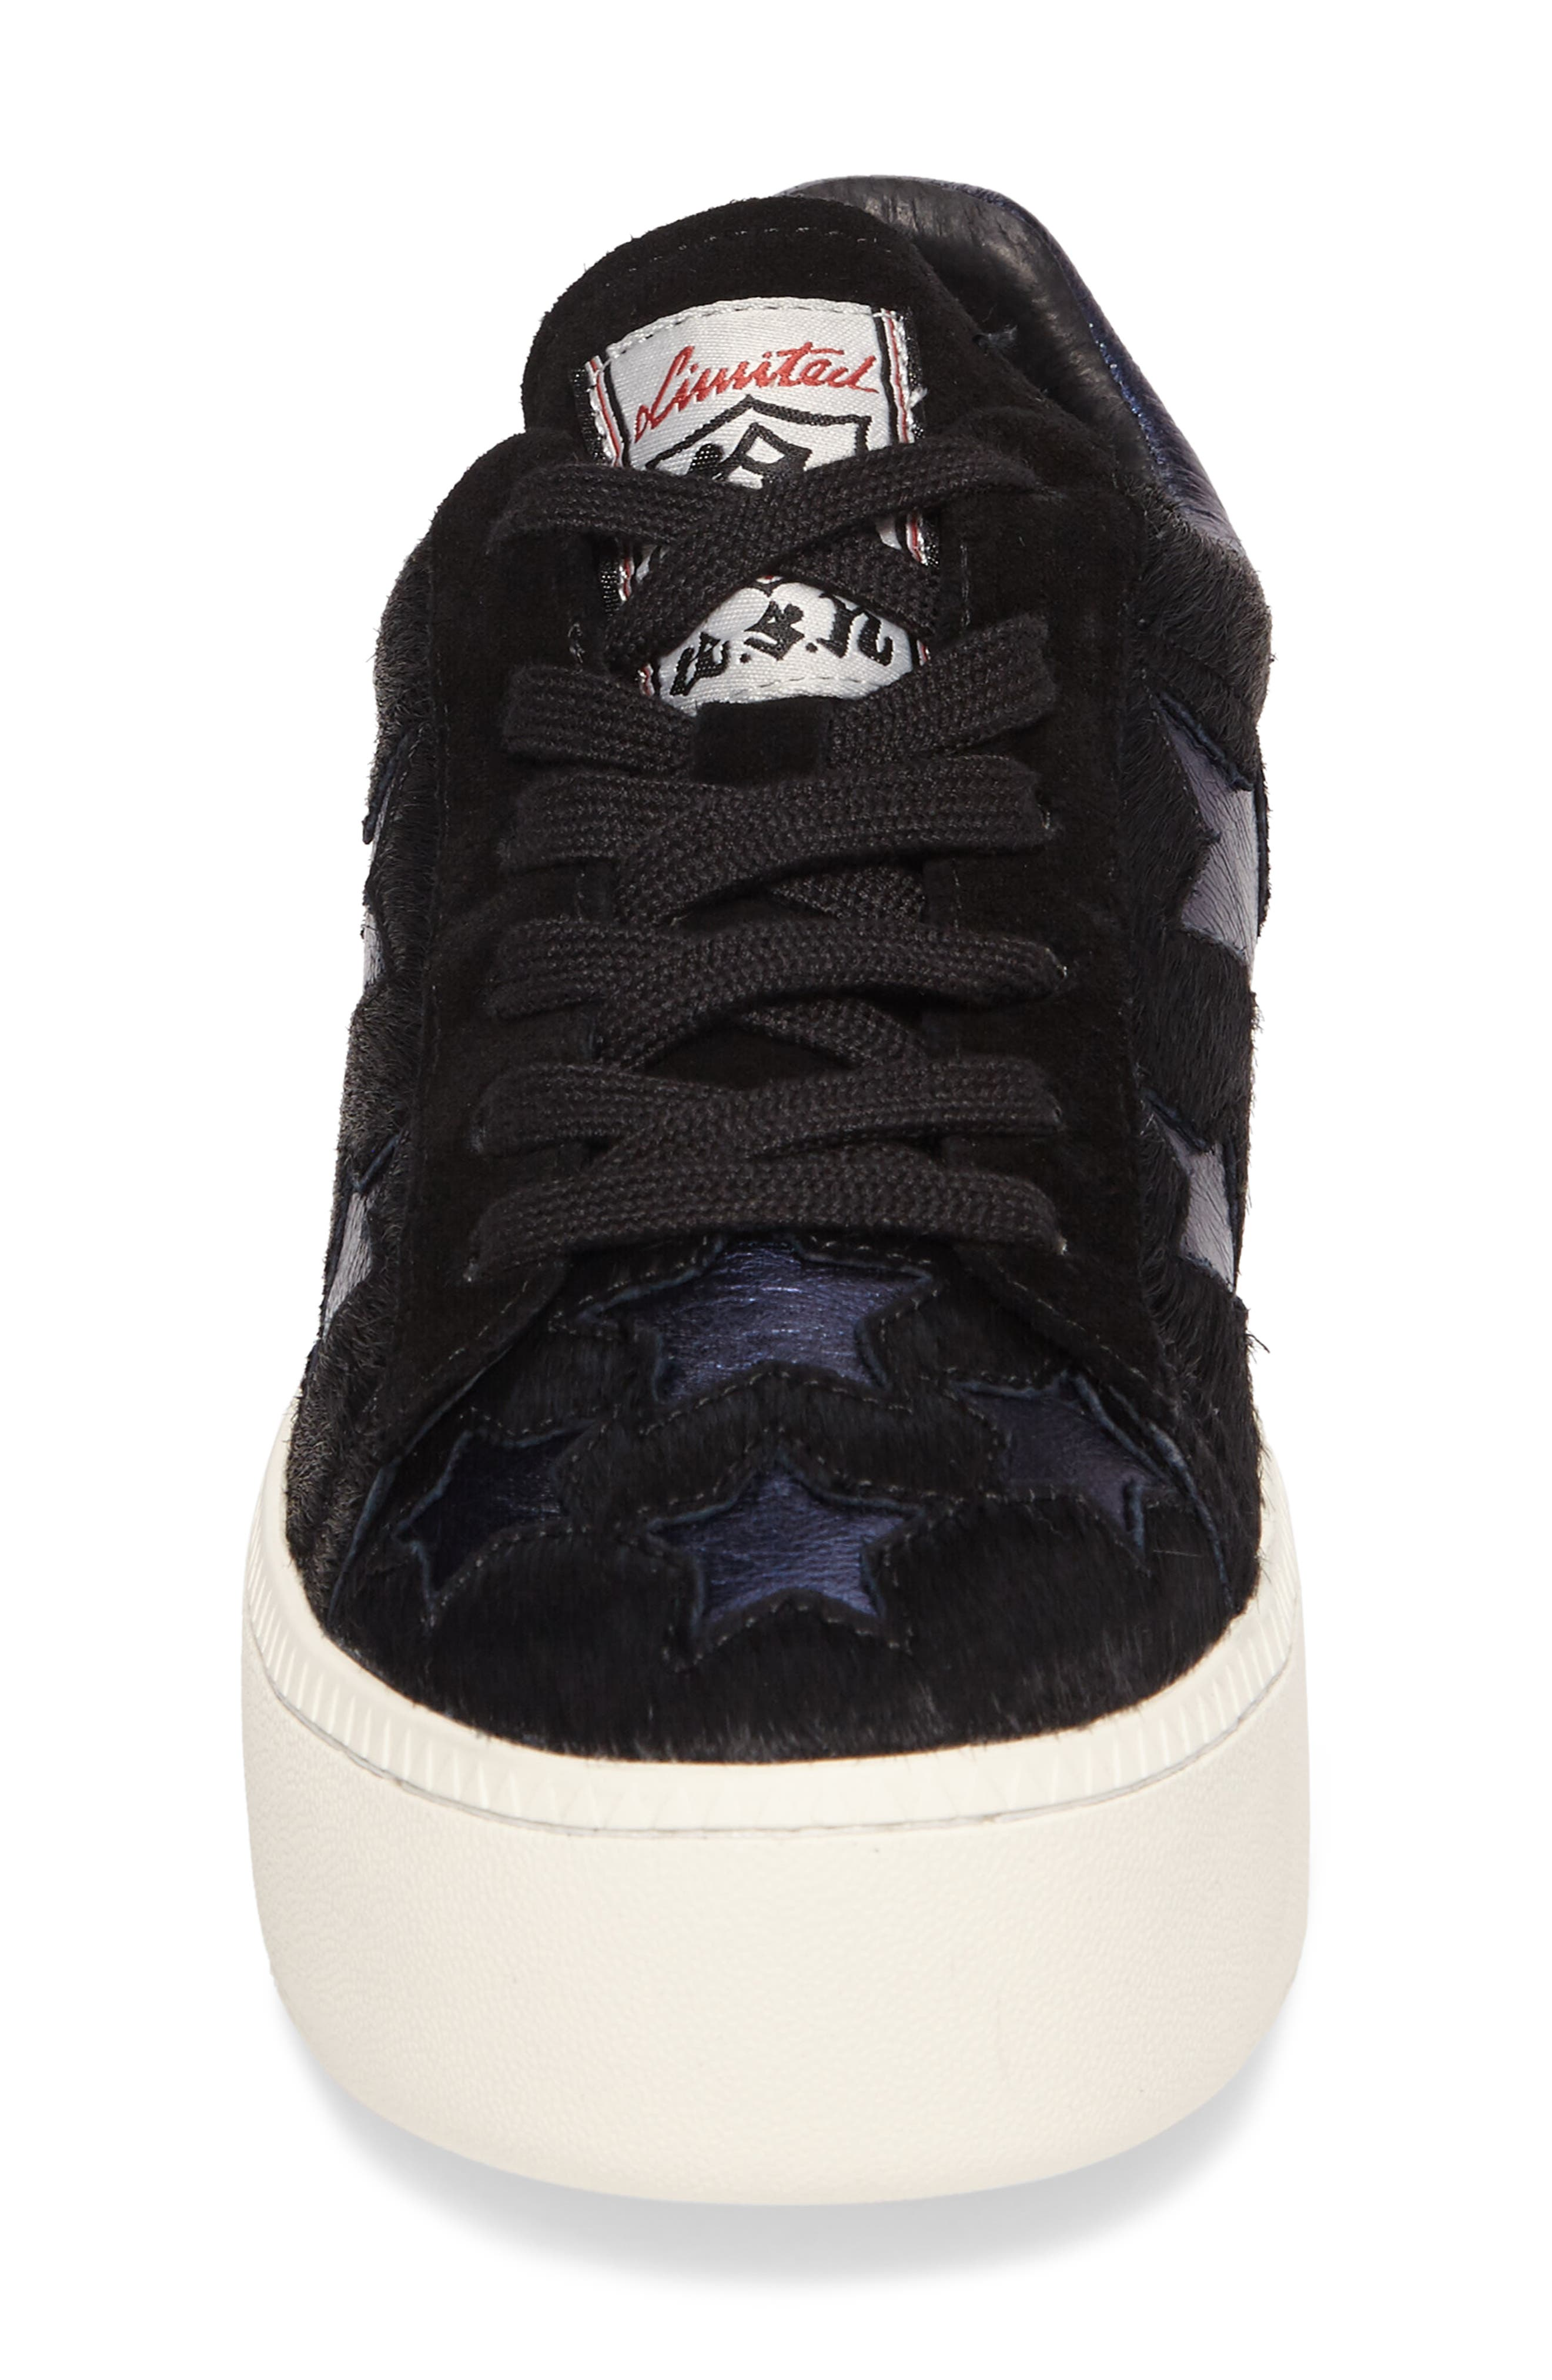 Cult Star Calf Hair Sneaker,                             Alternate thumbnail 4, color,                             001